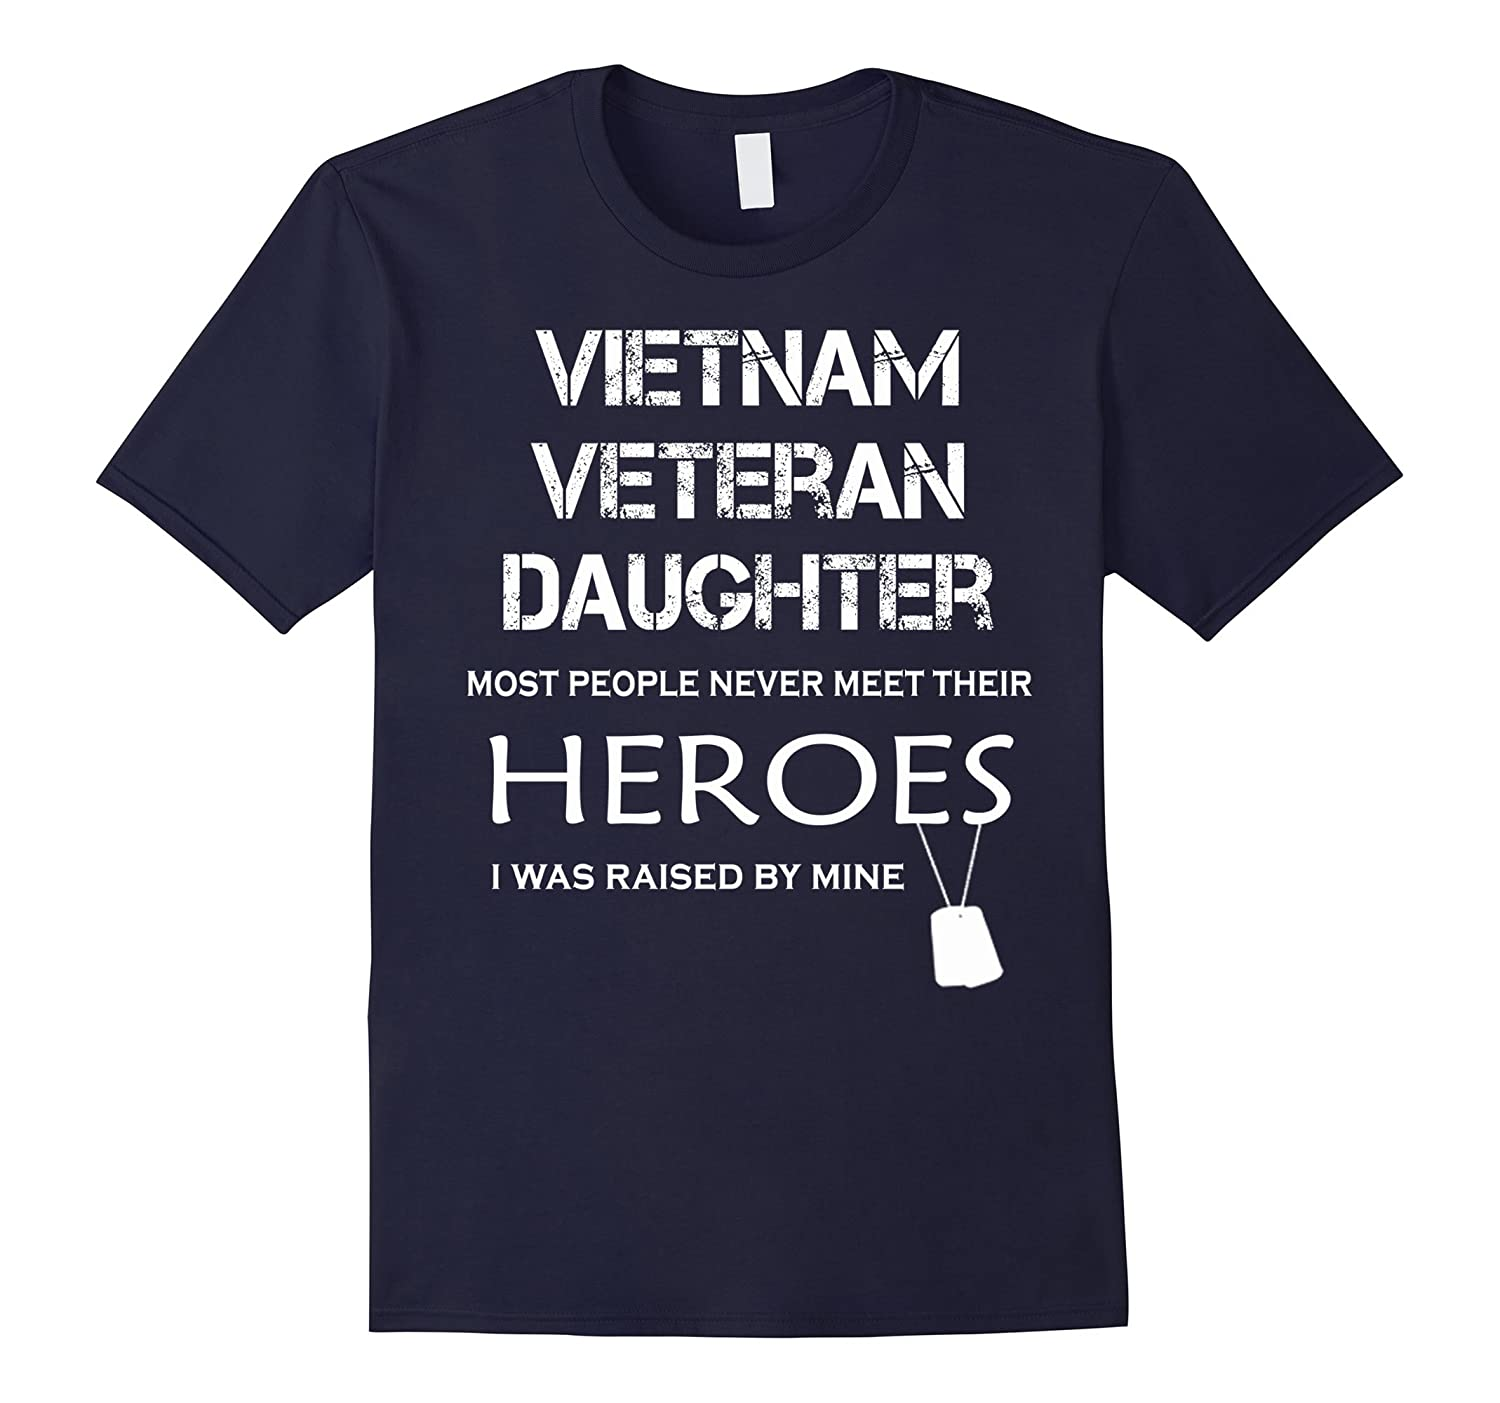 Viet Nam Veteran Daughter Funny Gifts for 4 of July Shirts